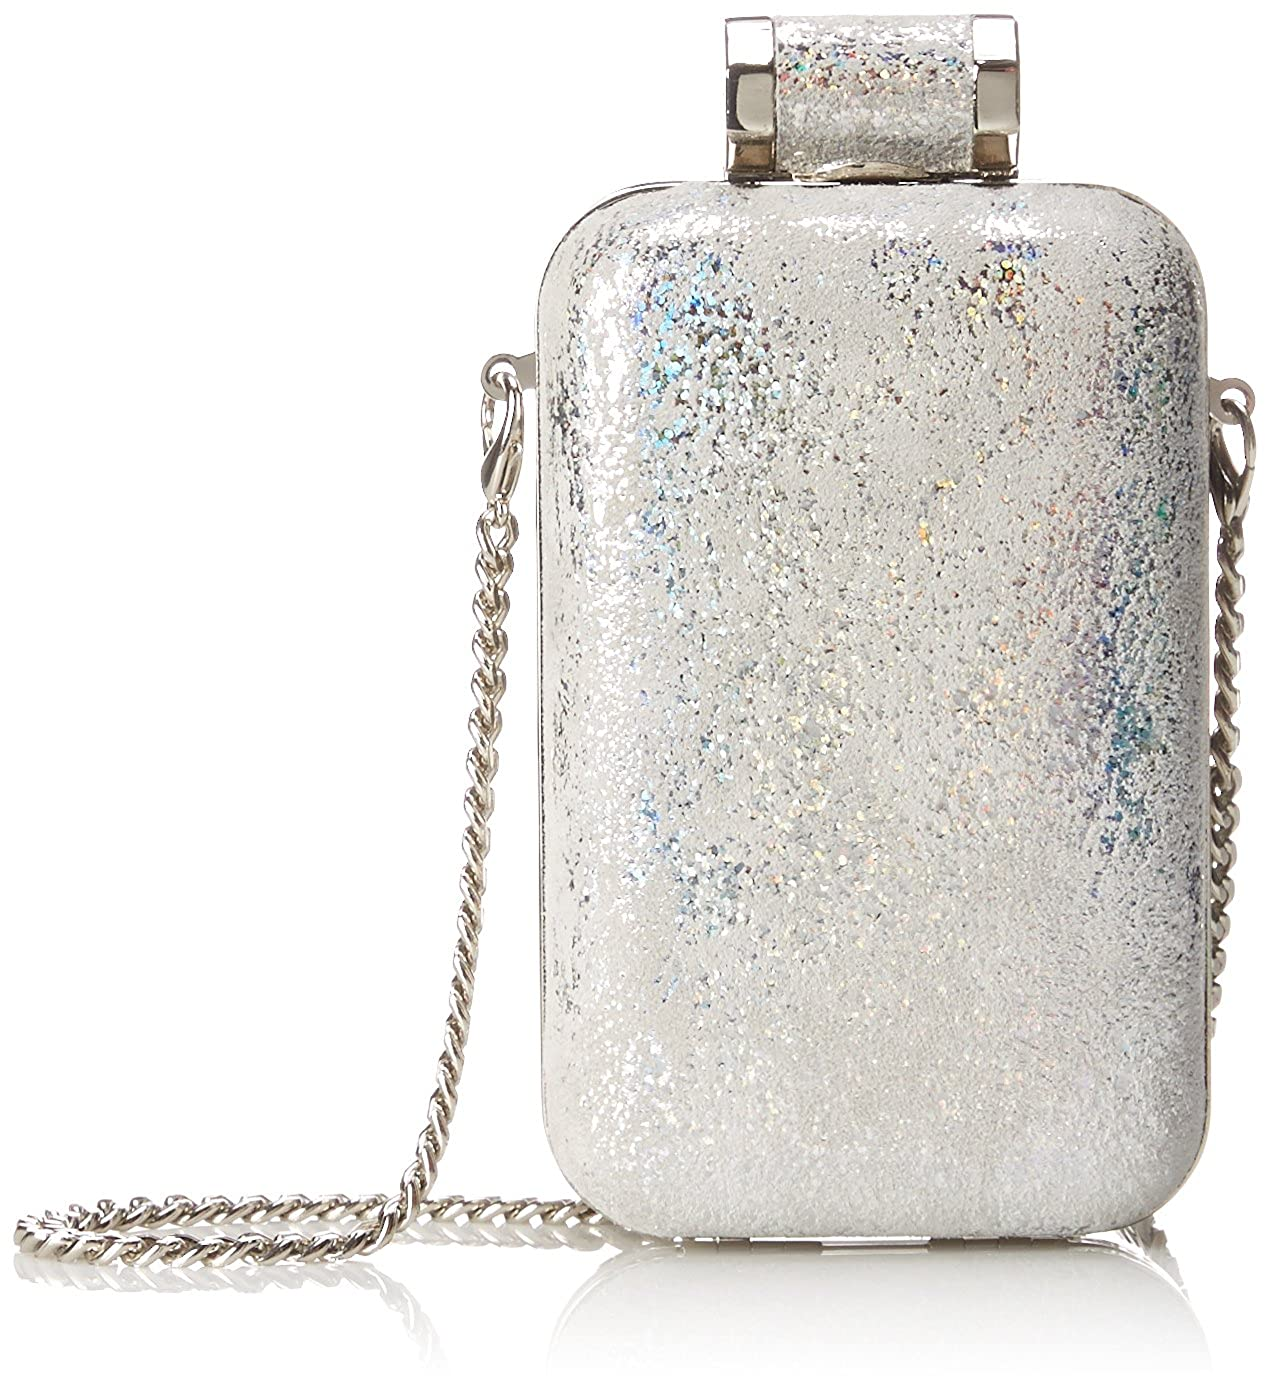 Halston Heritage Cellphone Minaudiere Evening Bag Silver One Size